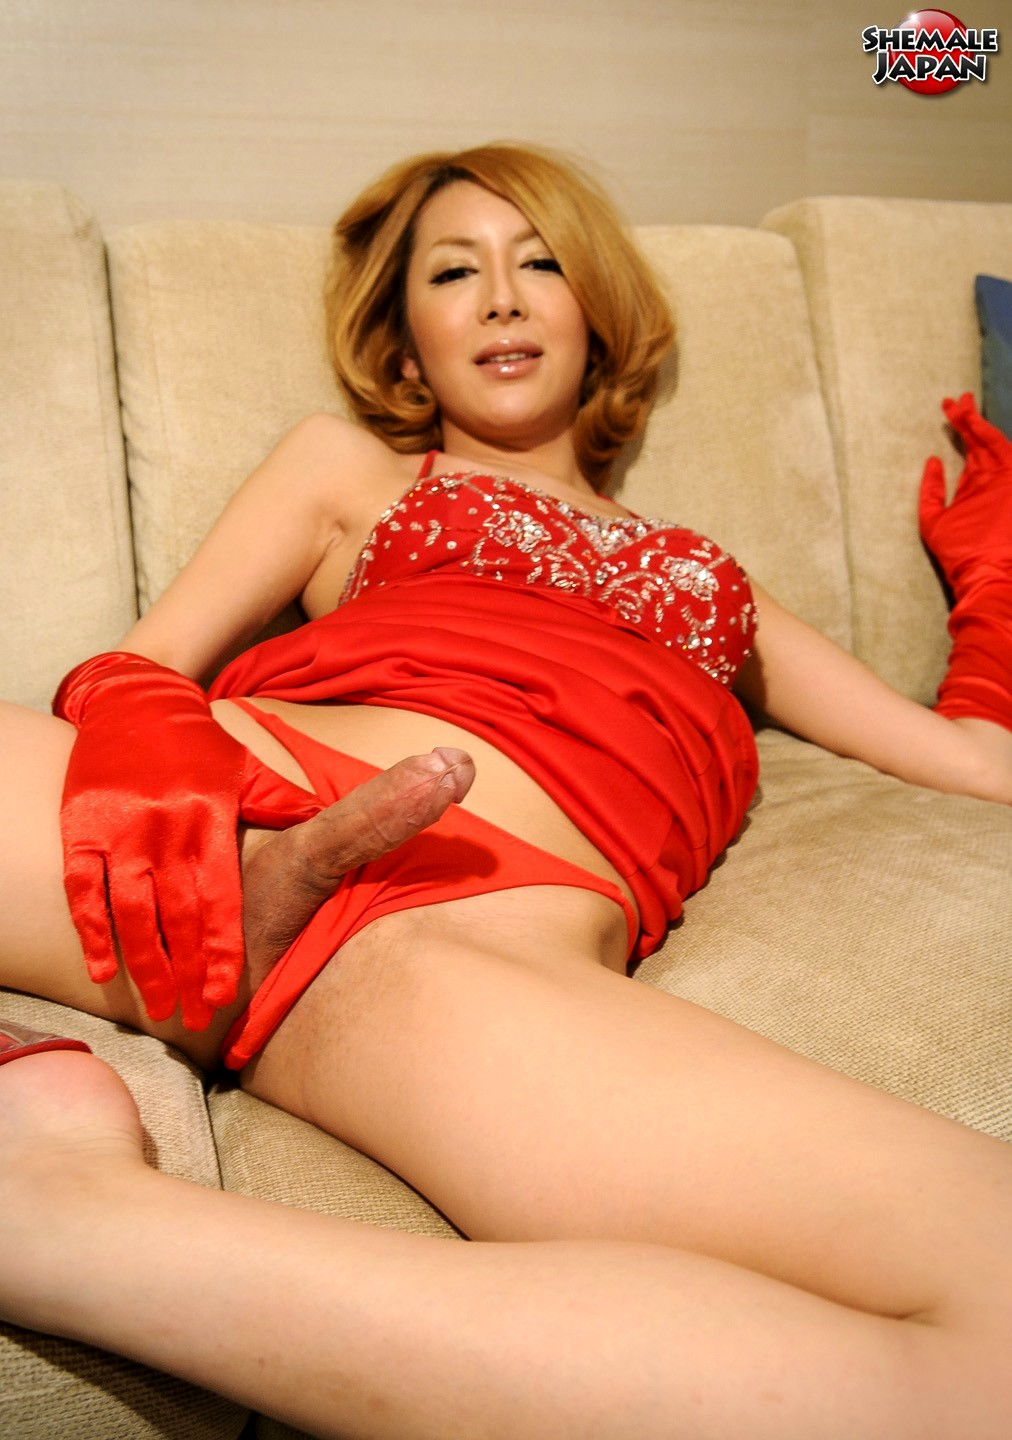 hime tsukino posing in arousing red outfit